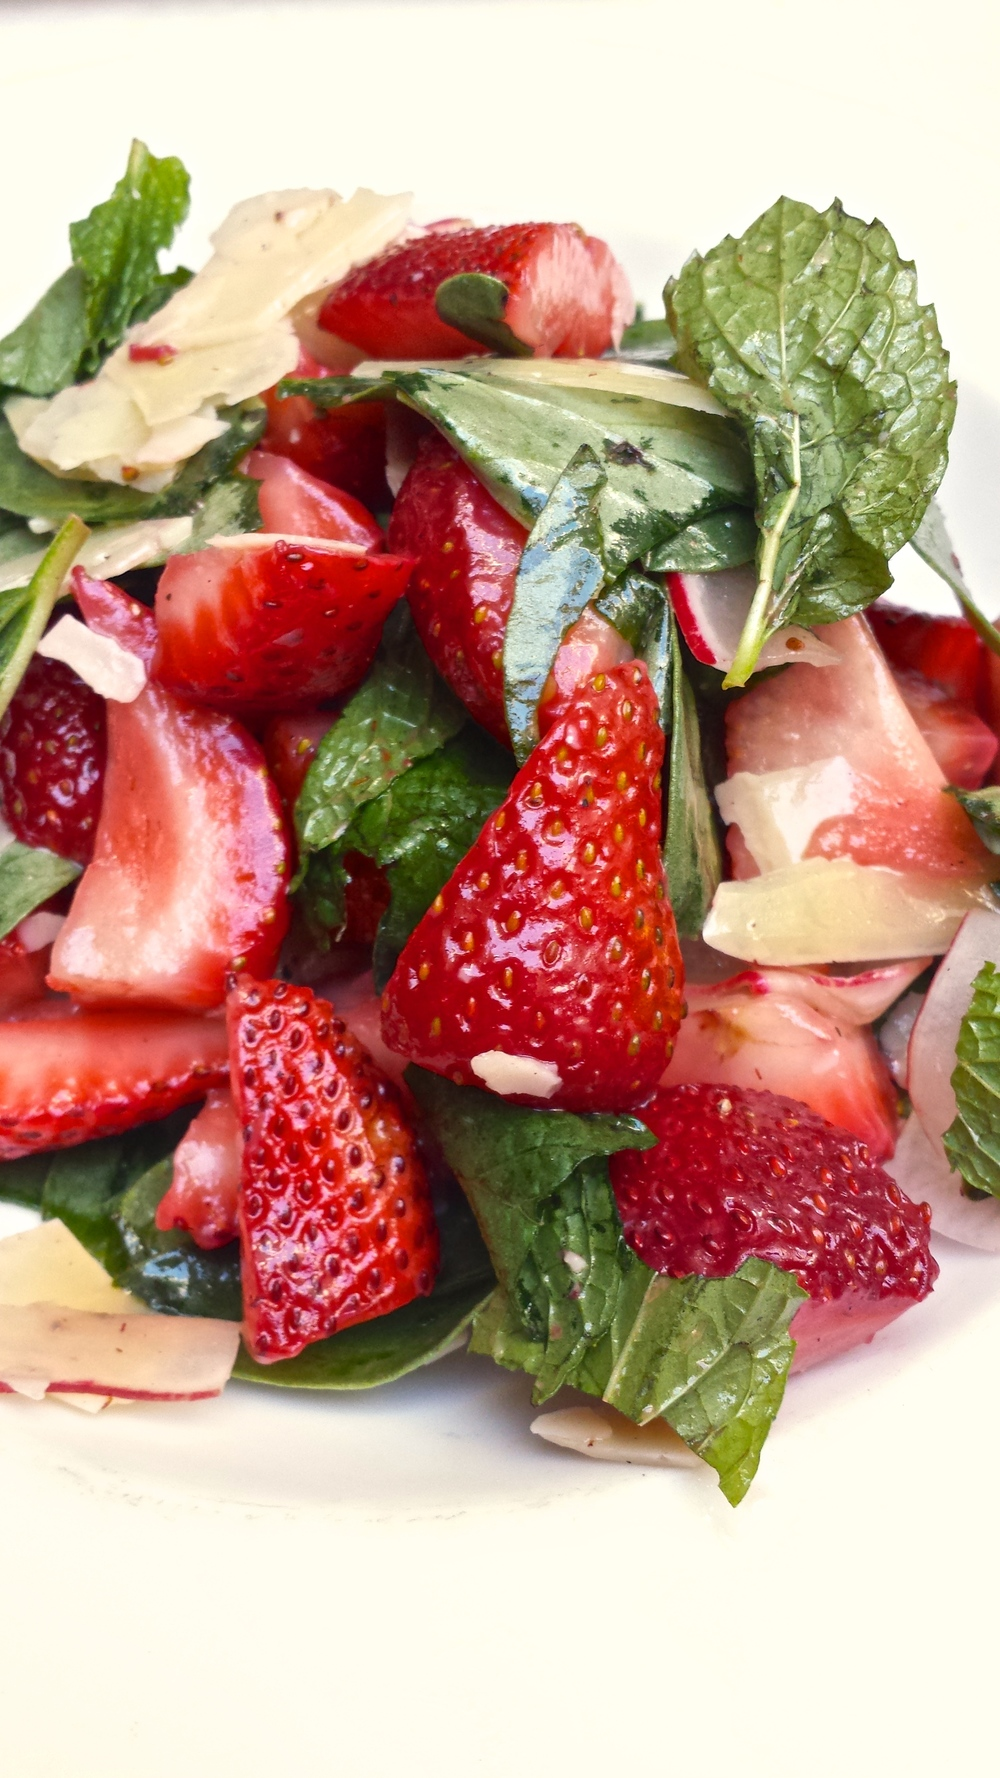 Wood and Vine strawberry salad